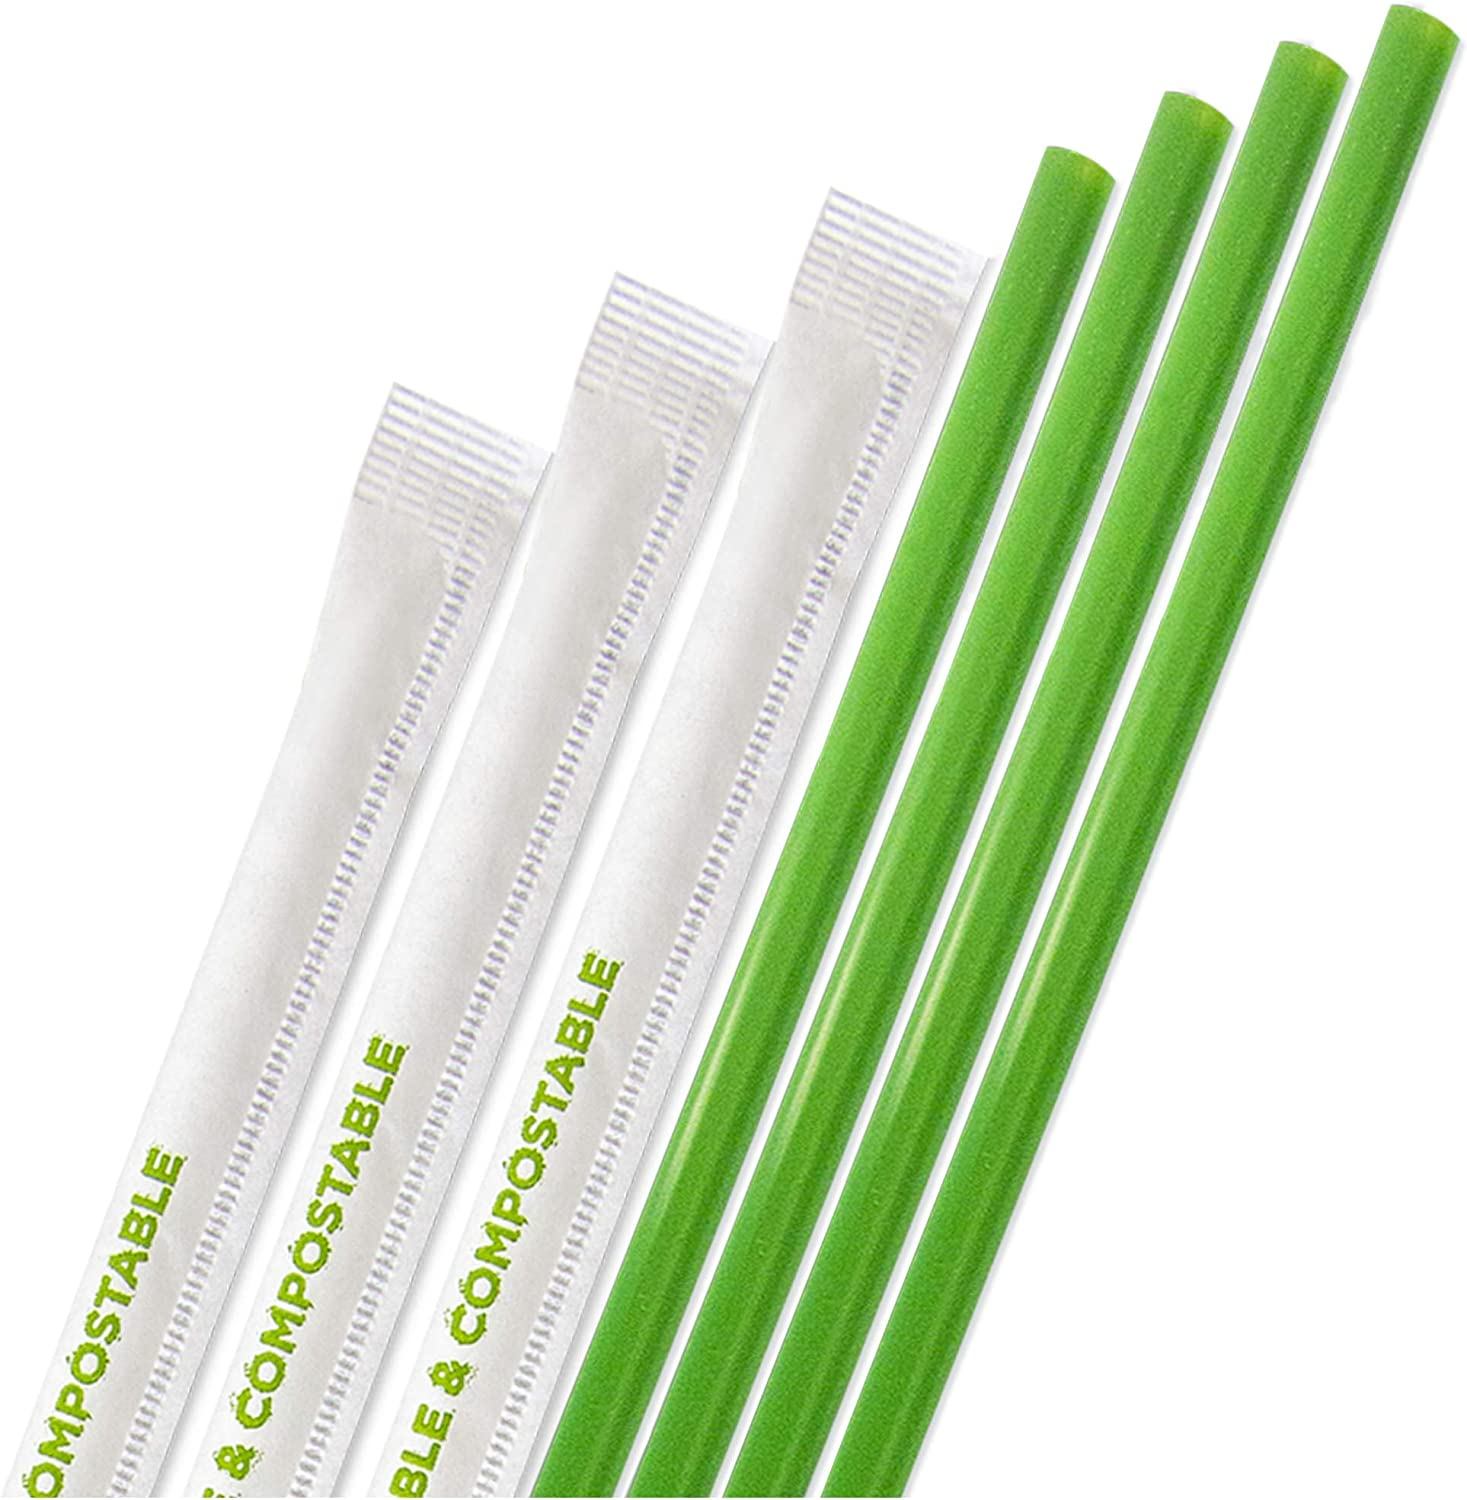 [400 Pack] Compostable Straws 7 3/4 Inch Long - Green Disposable Straws, Biodegradable Eco Friendly Drinking Straw for Milkshake Smoothies, PLA Plant Based Individually Wrap Plastic Paper Alternative